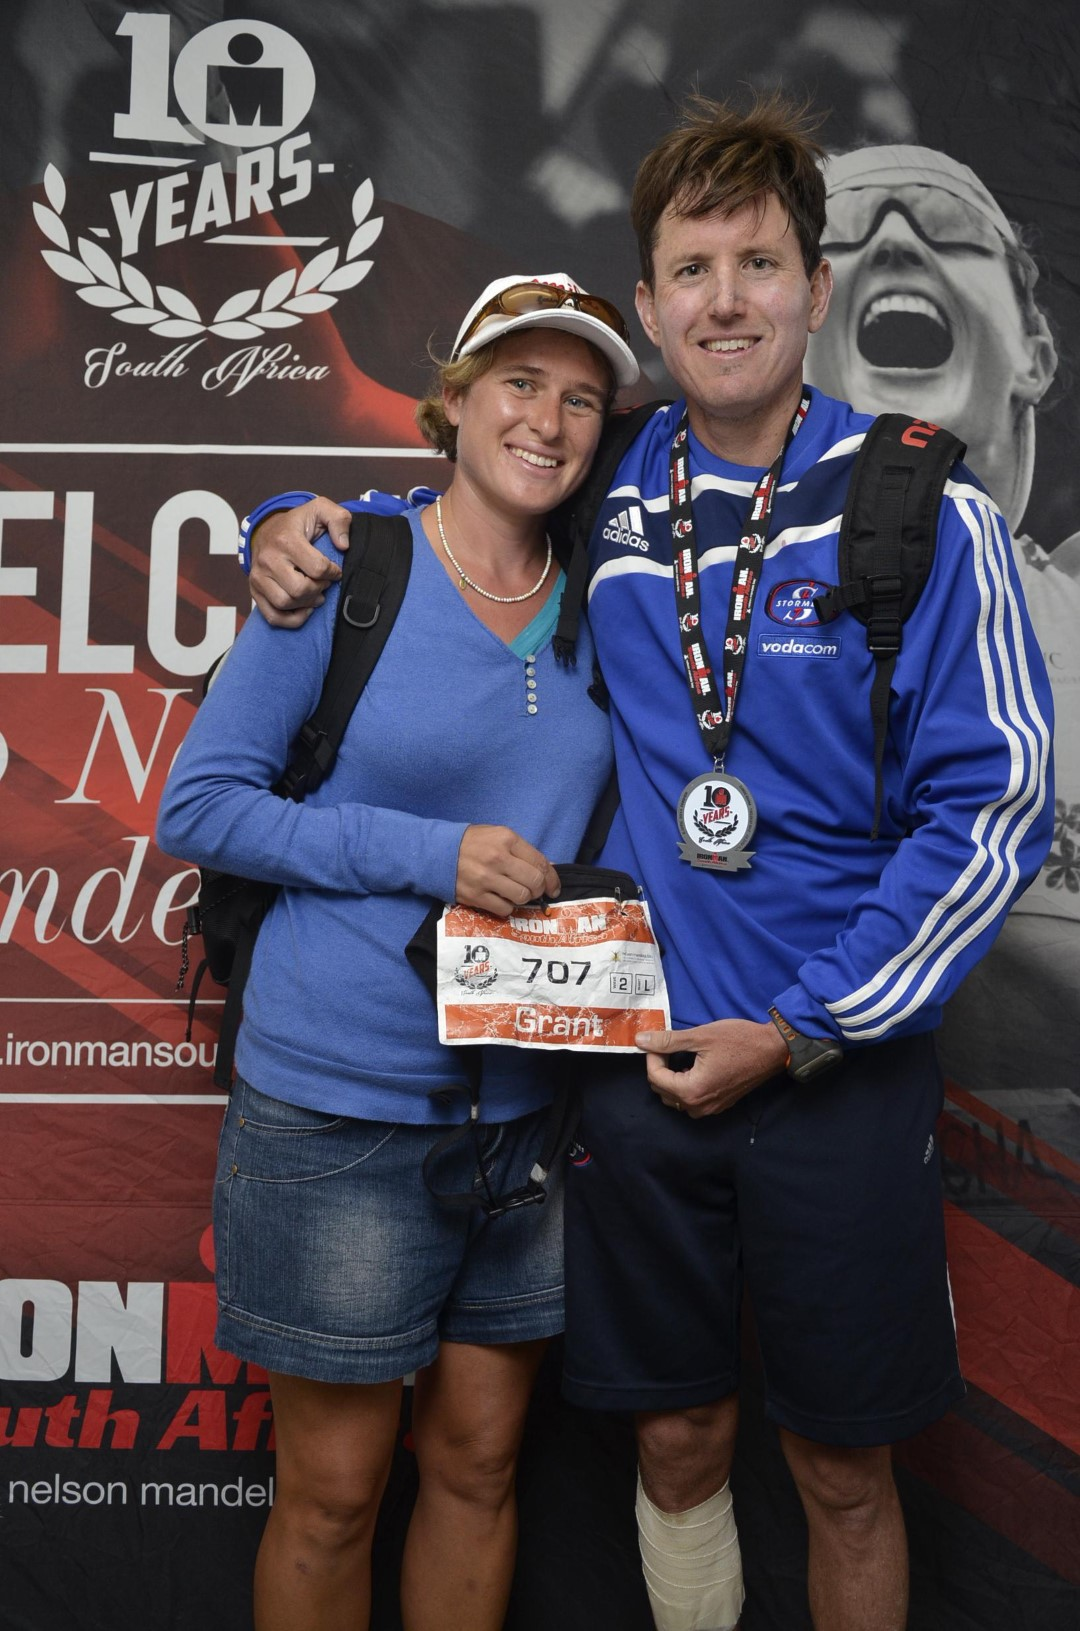 Grant's 2015 Ironman for the Smile Foundation